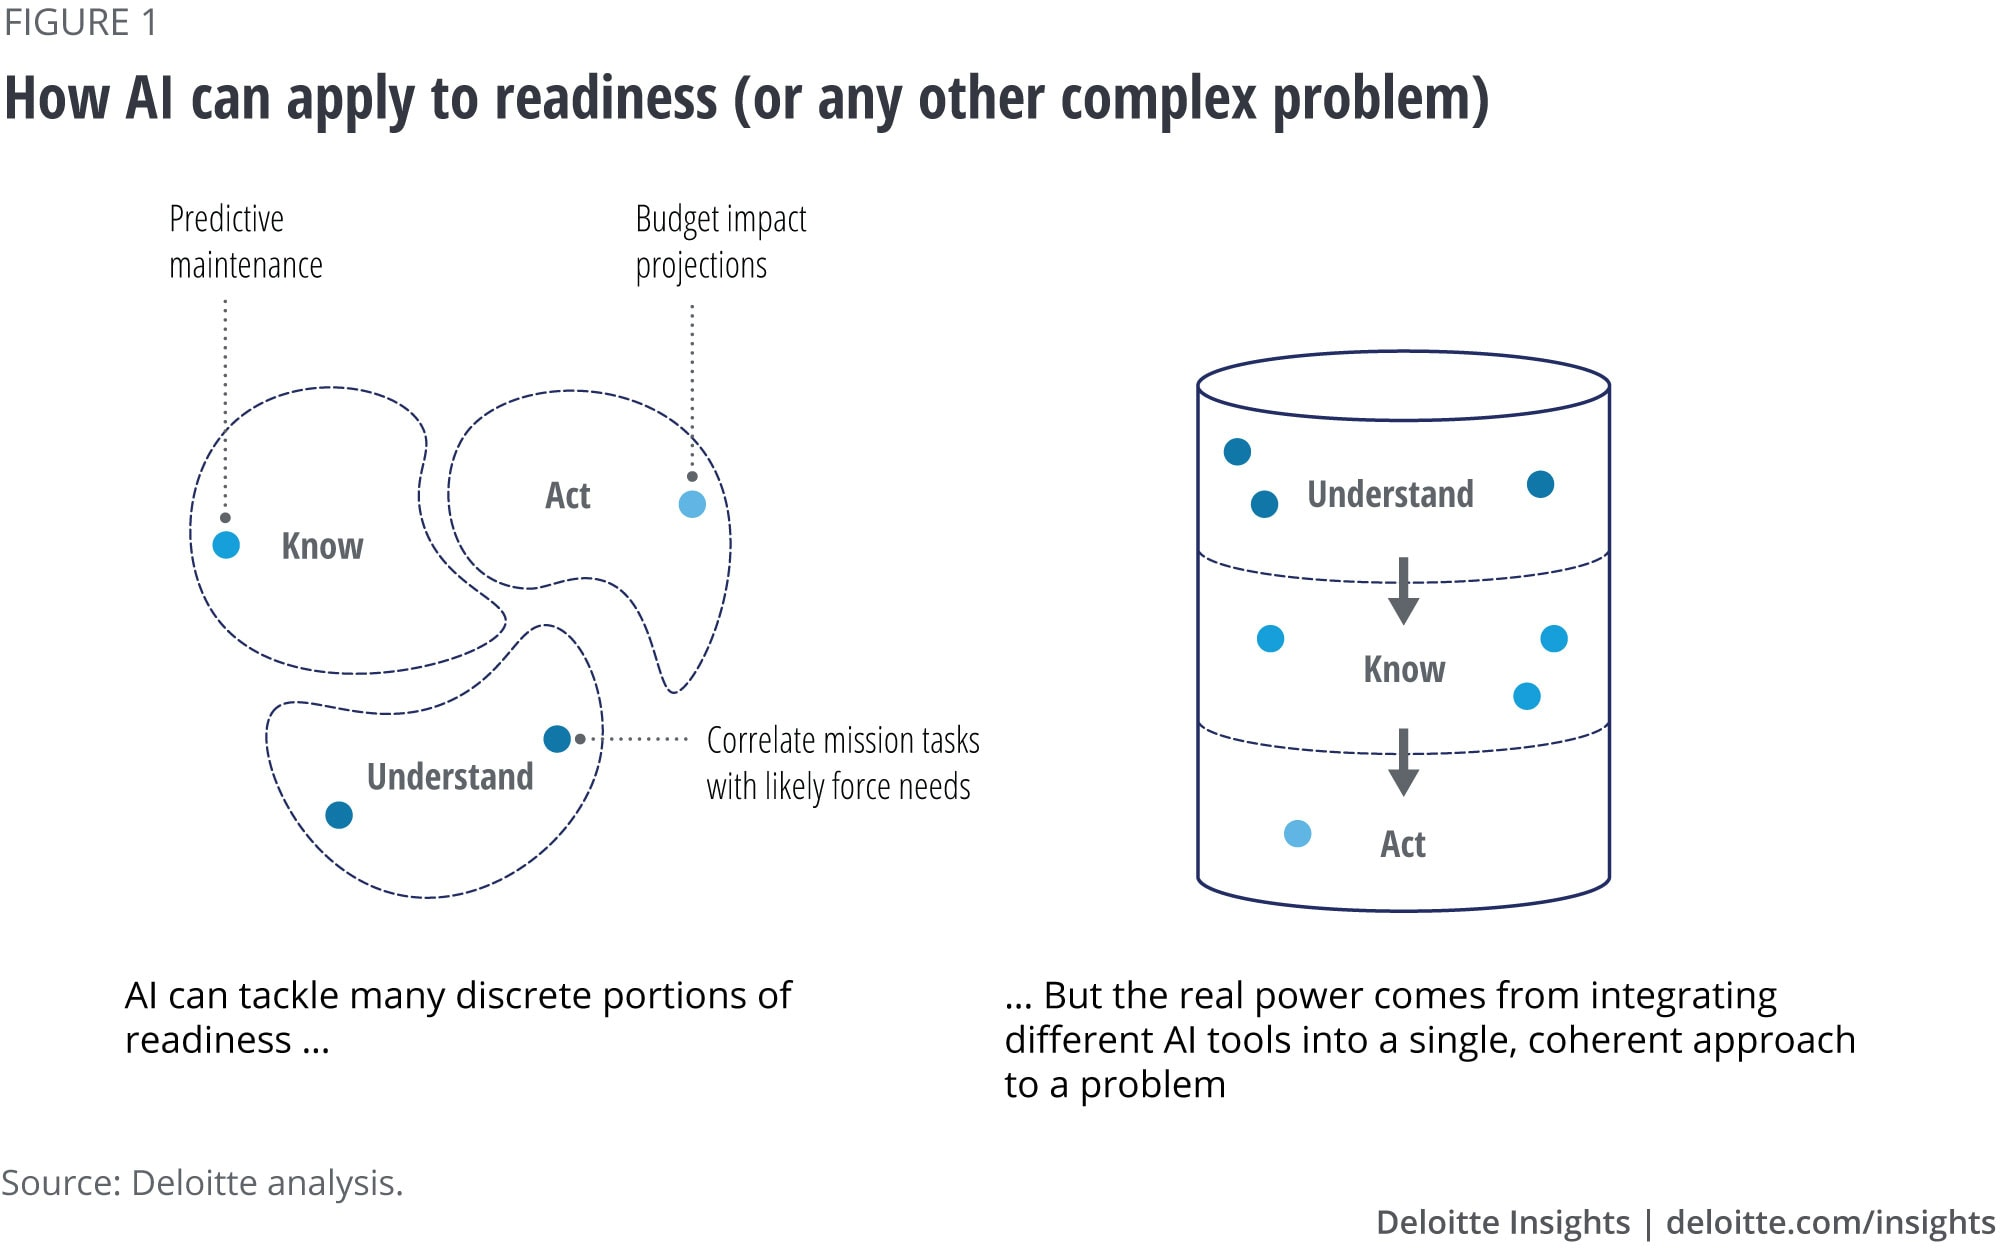 How AI can apply to readiness (or any other complex problem)